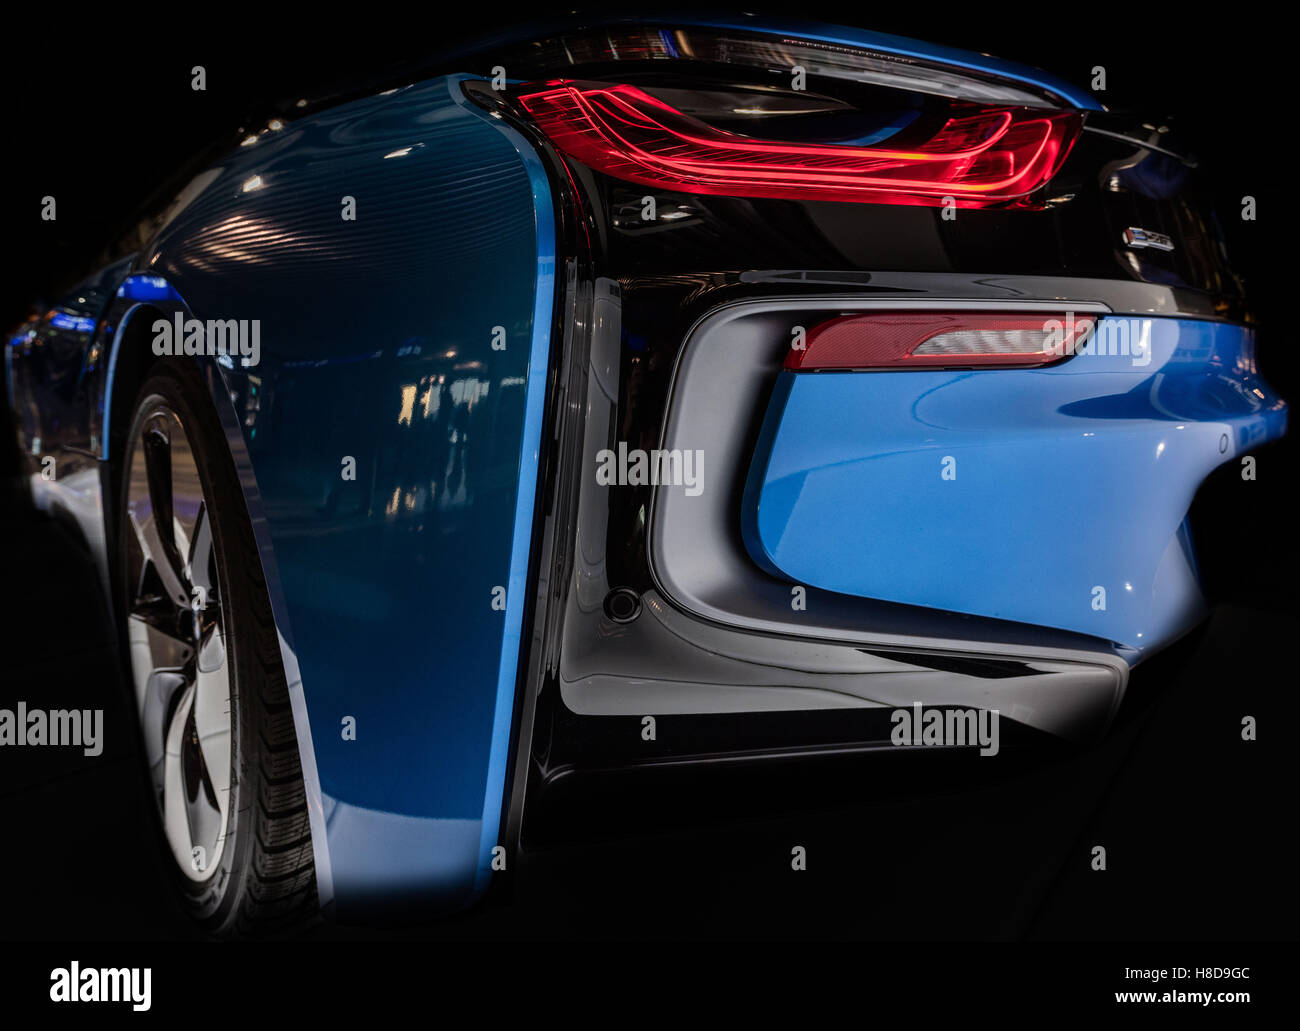 Bmw Rear Light Stock Photos Bmw Rear Light Stock Images Alamy